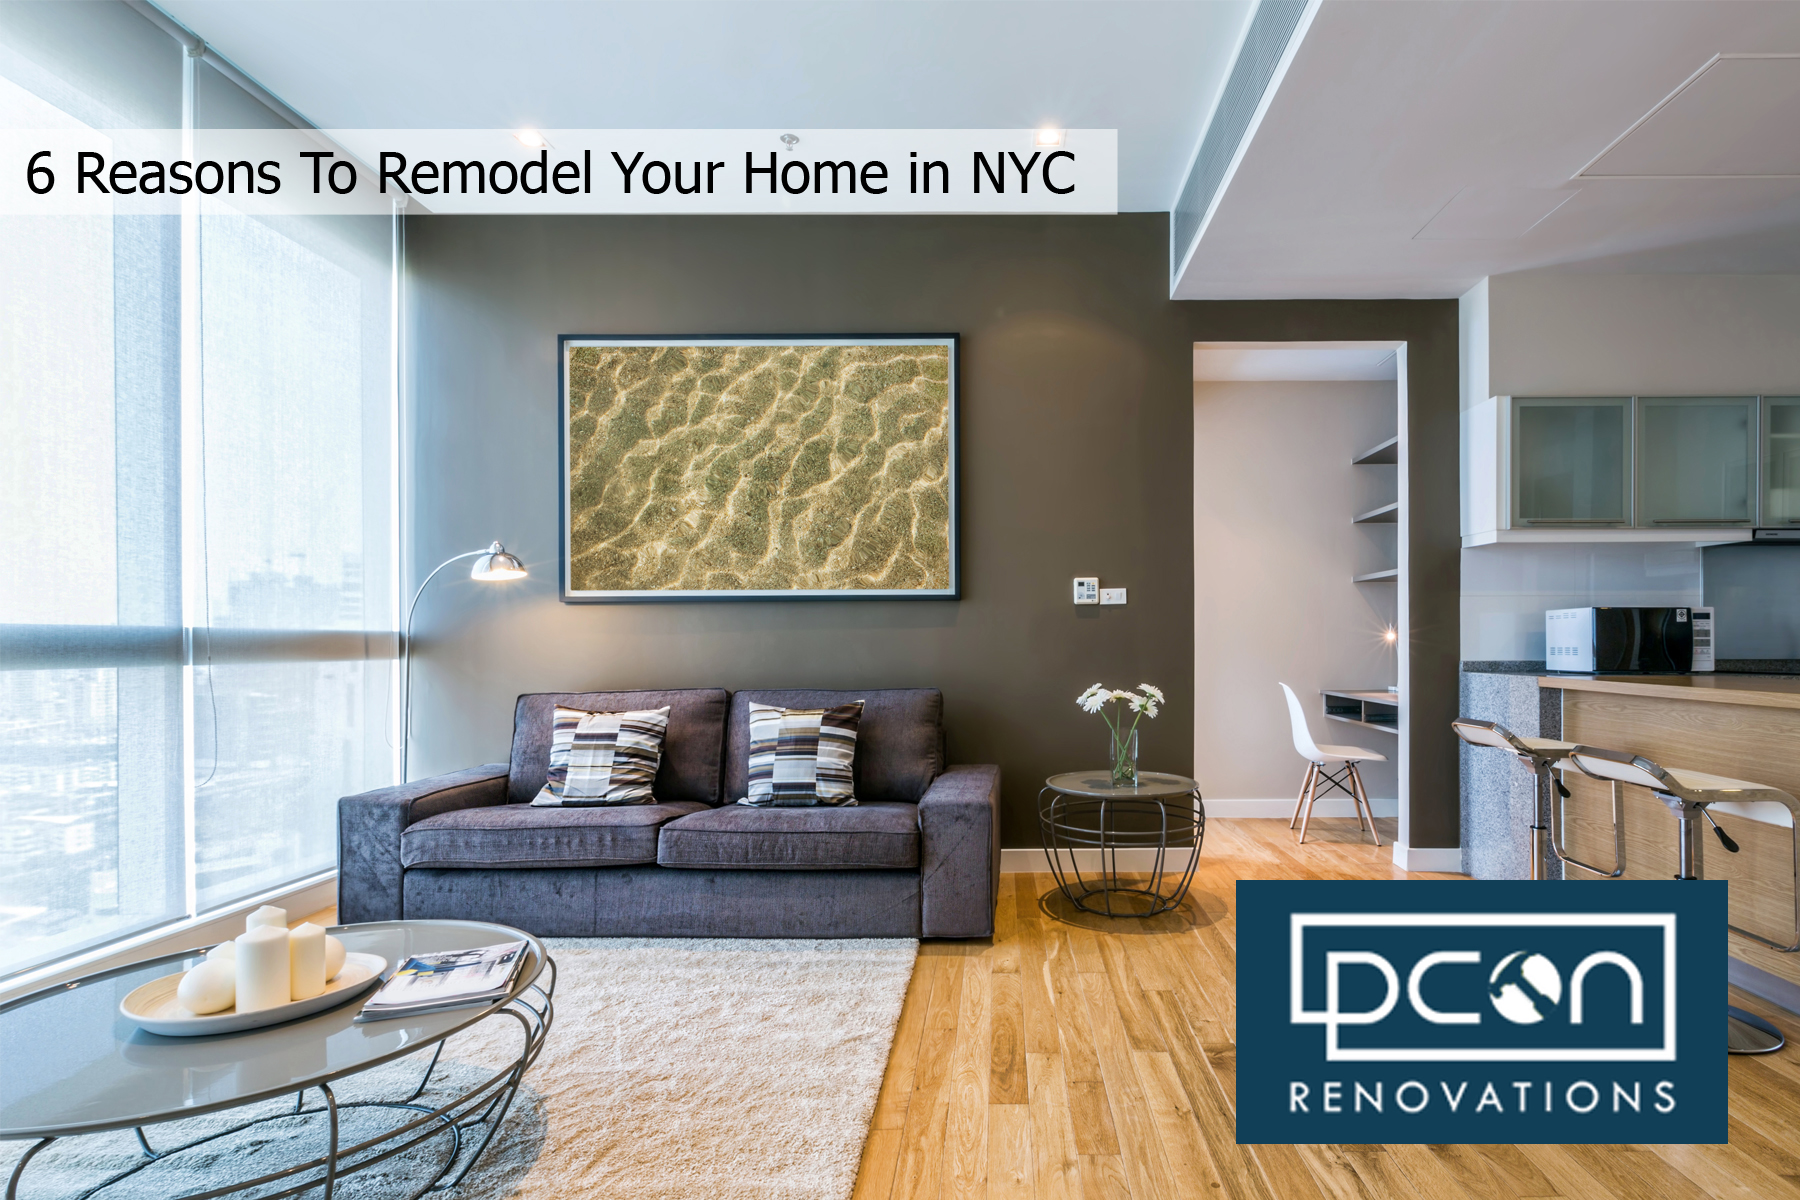 6 Reasons To Remodel Your Home in NYC